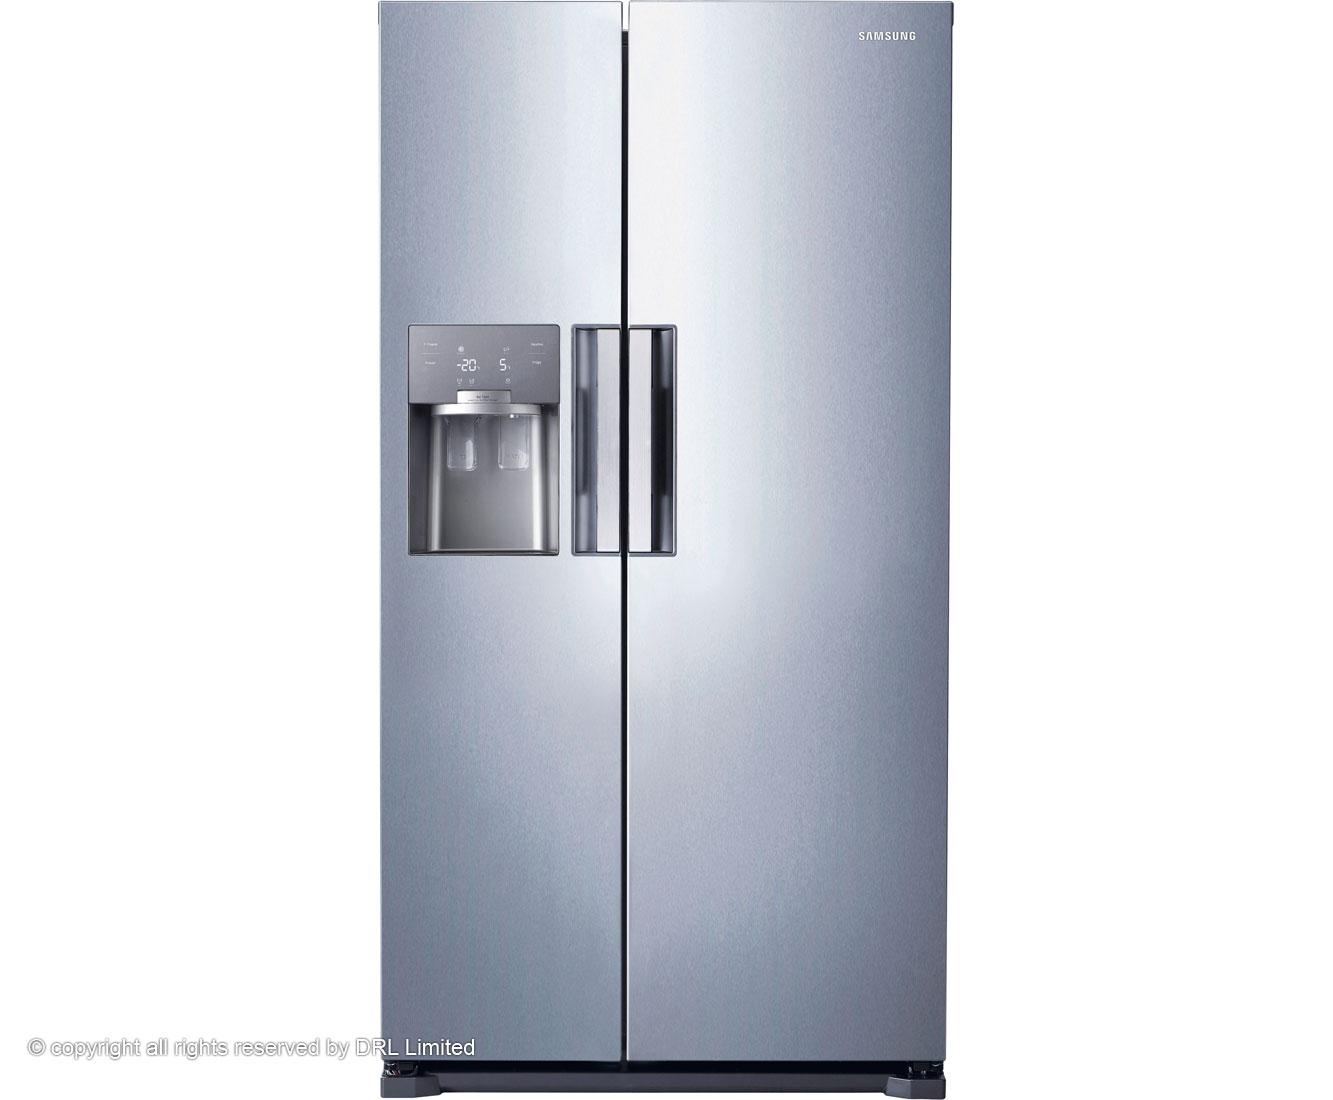 Samsung H-Series RS7667FHCSL American Fridge Freezer - Silver